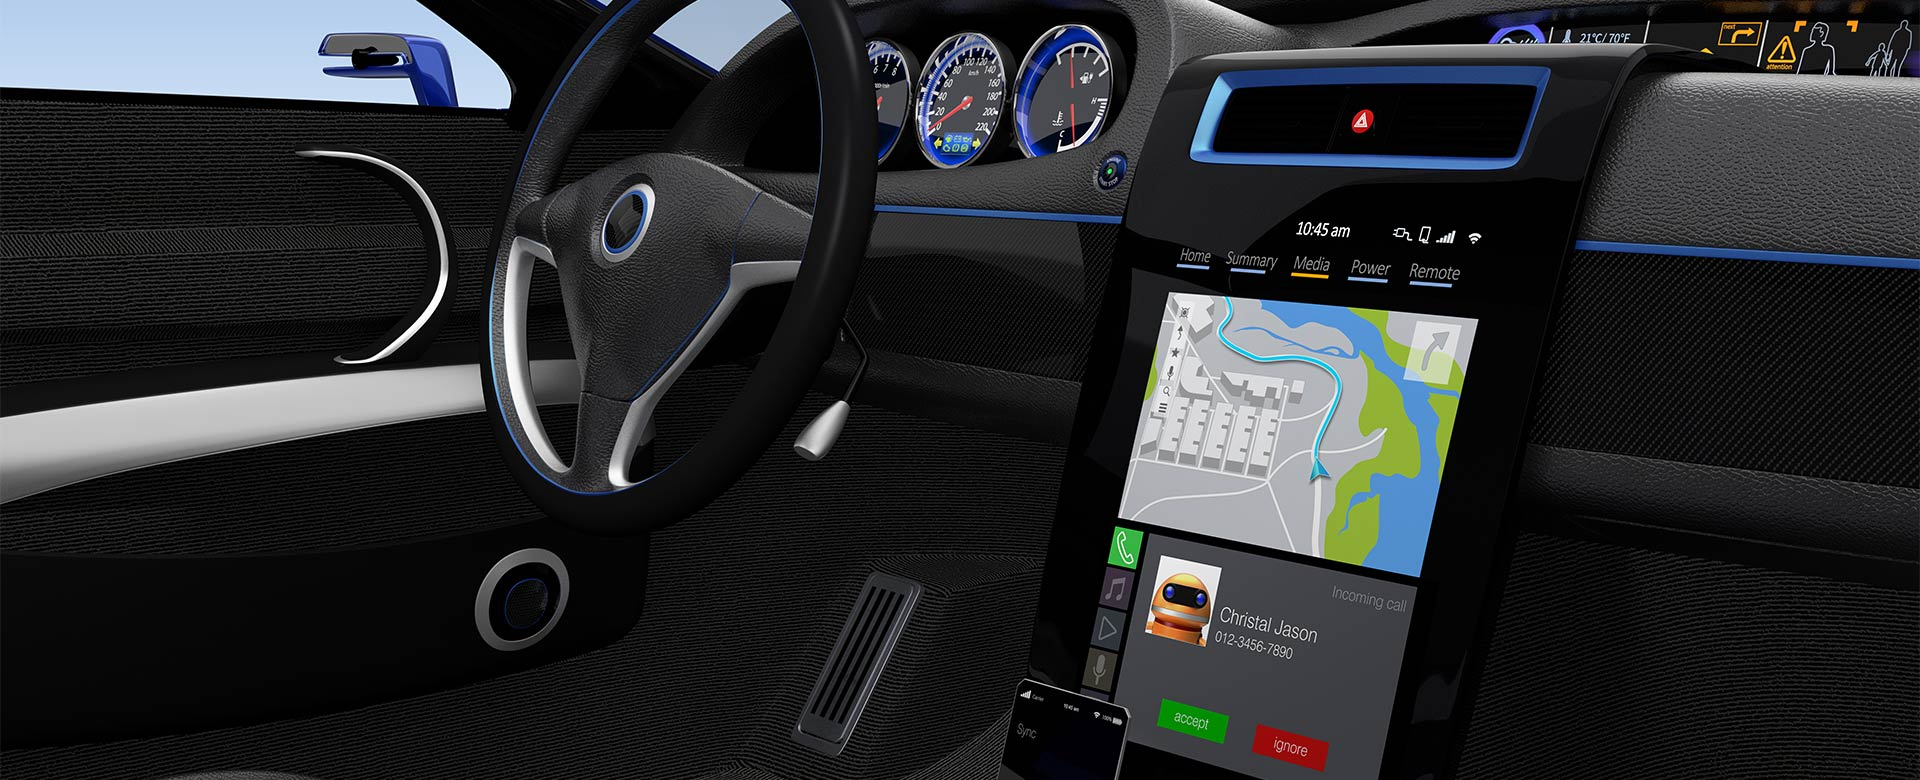 Interface Design Studie Automobil